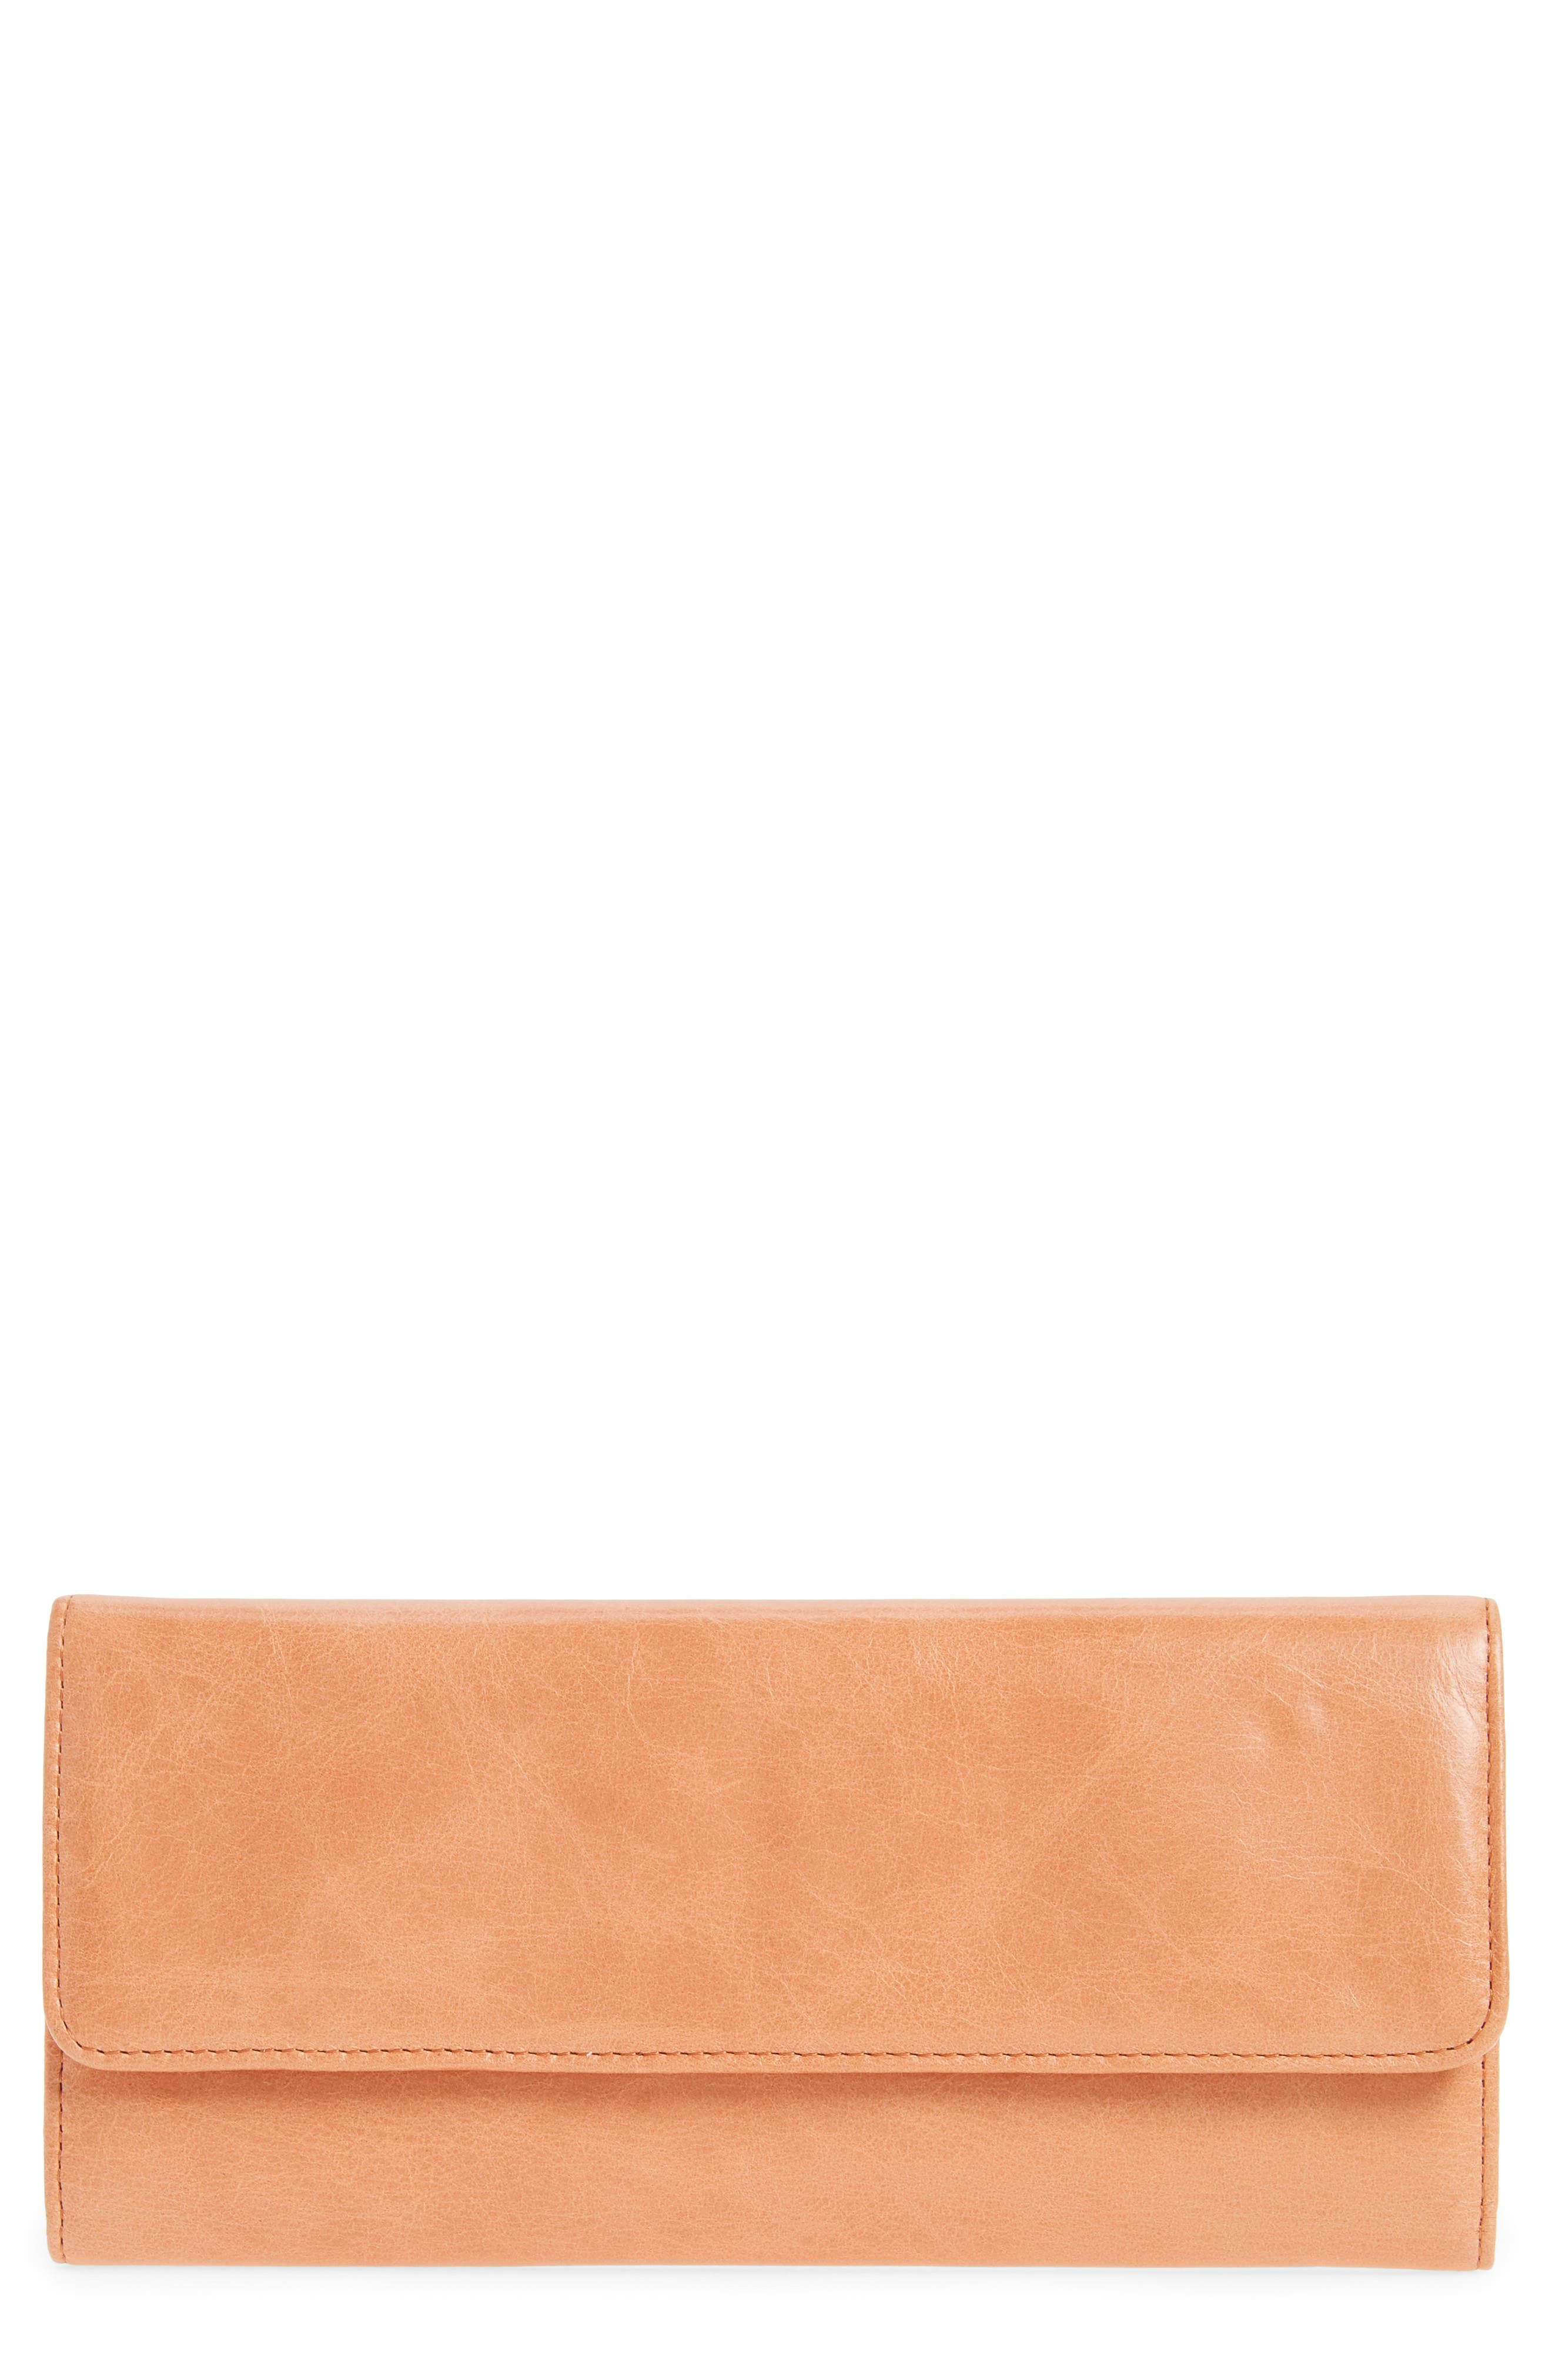 Main Image - Hobo 'Sadie' Leather Wallet